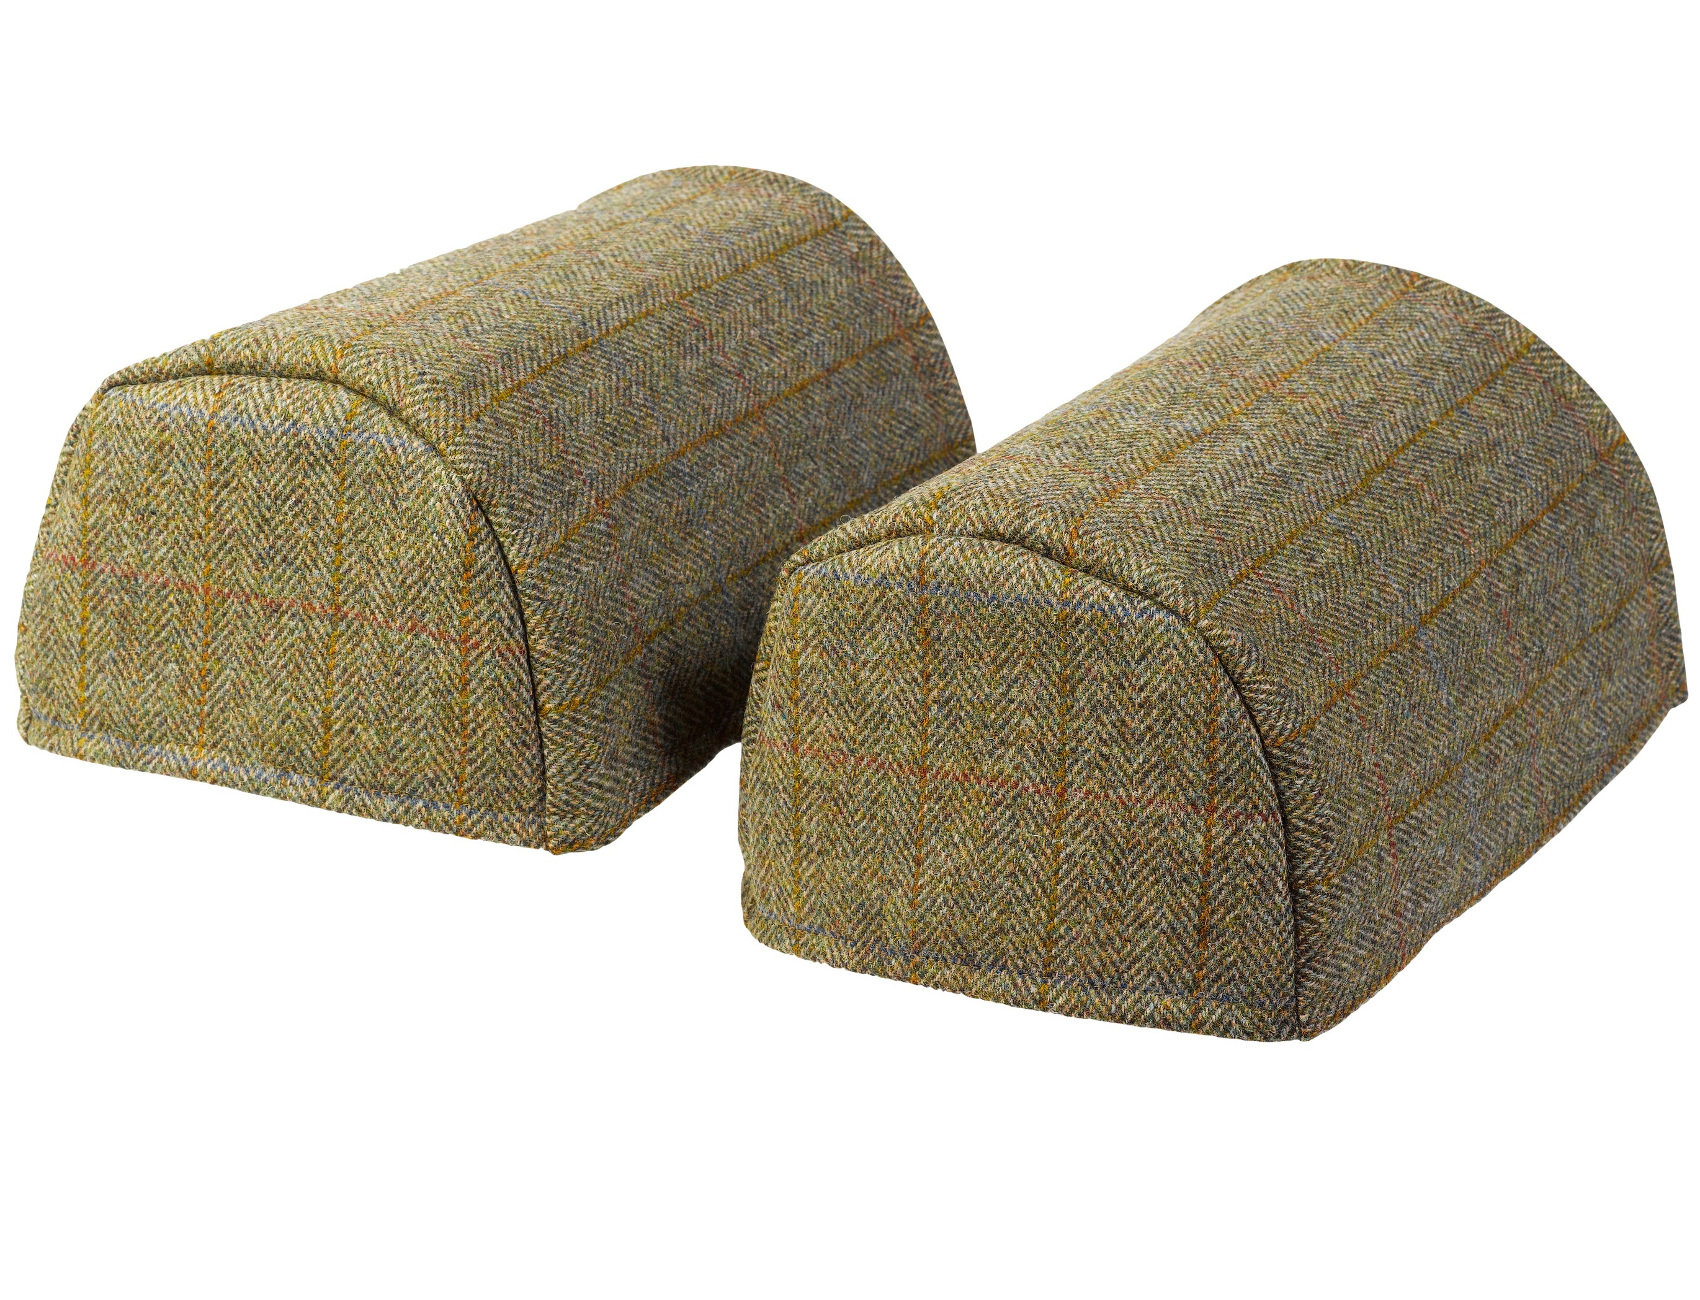 chair covers scotland bed scottish tweed standard round arm caps 100 pure new wool